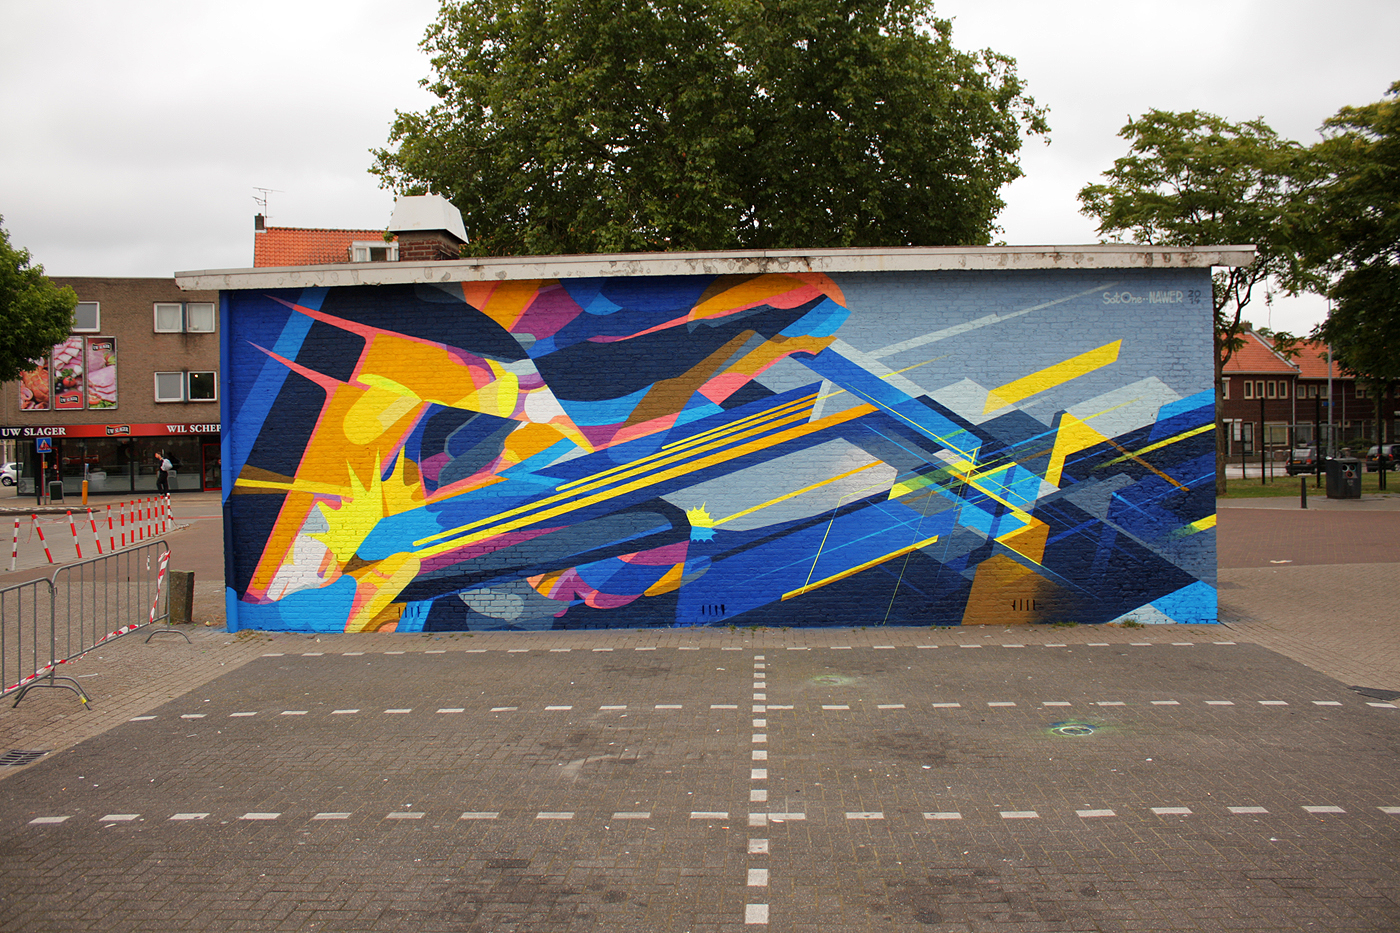 satone-nawer-new-mural-in-eindhoven-05